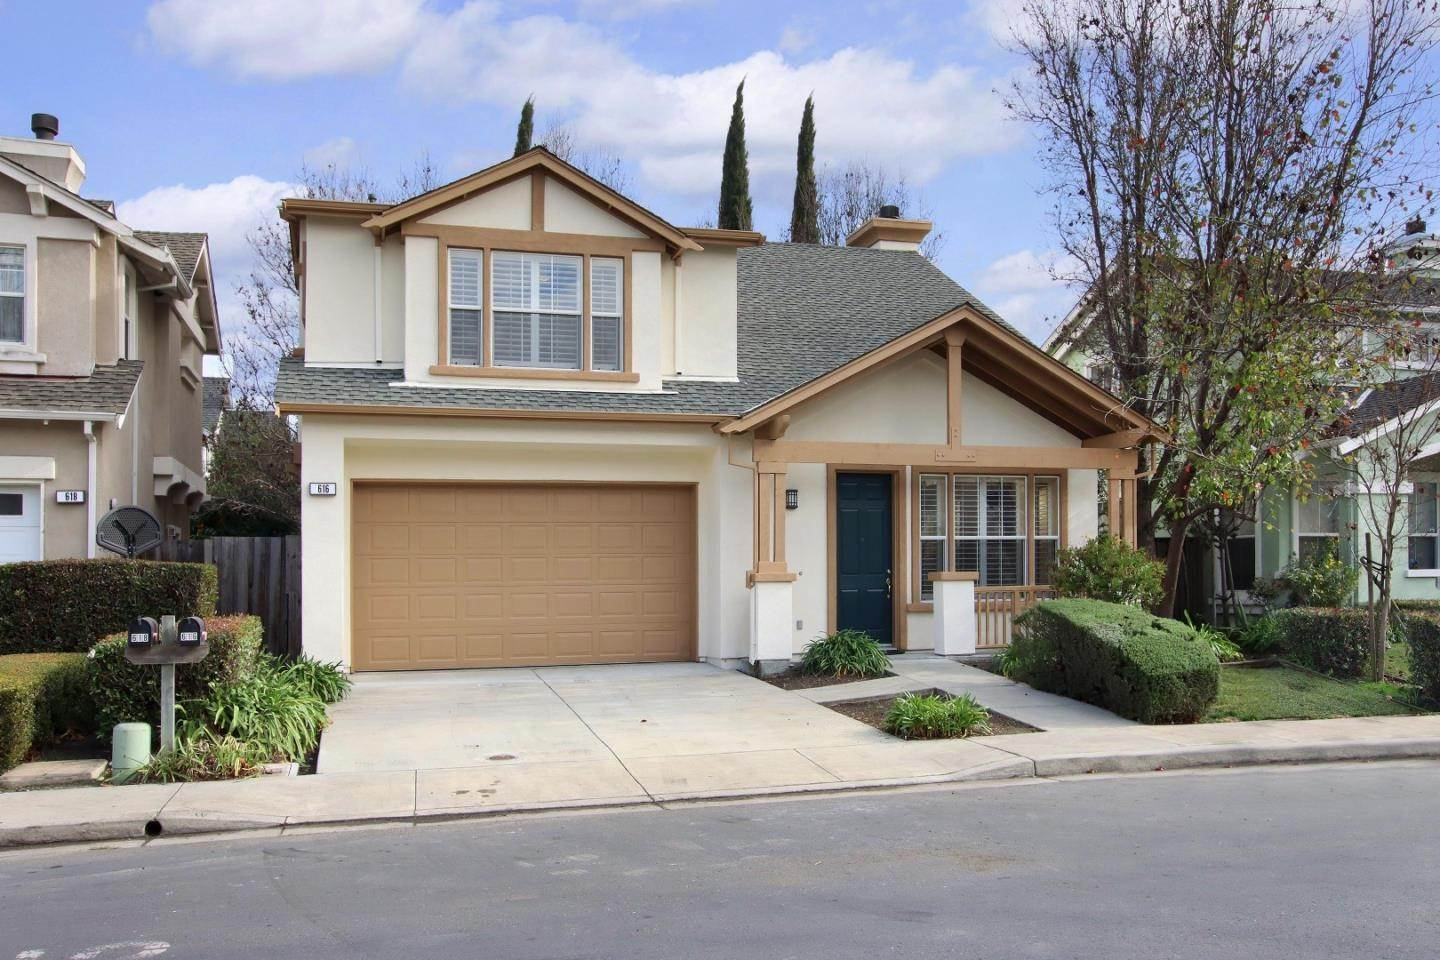 Property for Sale at 616 Santa Catalina Terrace Sunnyvale, California 94085 United States